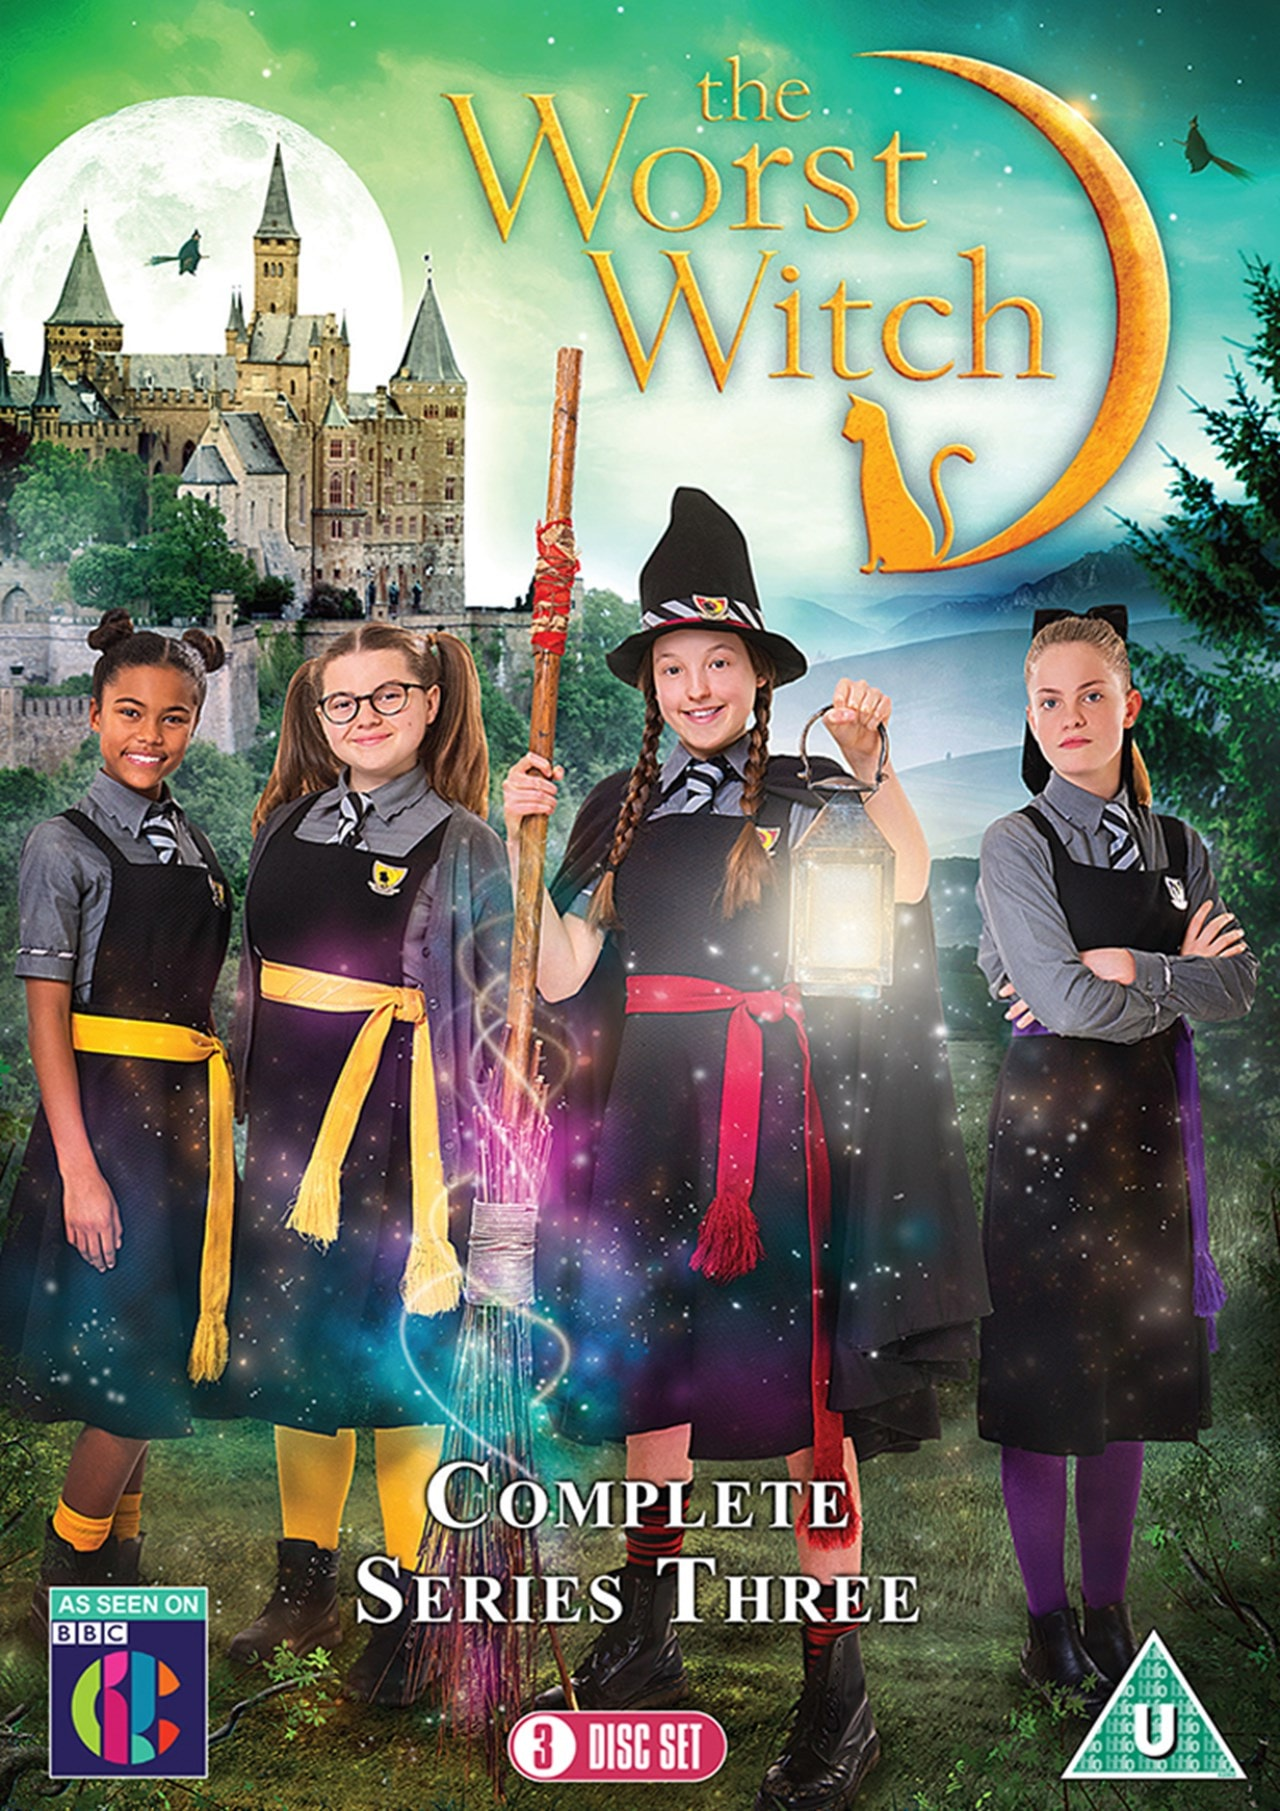 The Worst Witch: Complete Series 3 - 1